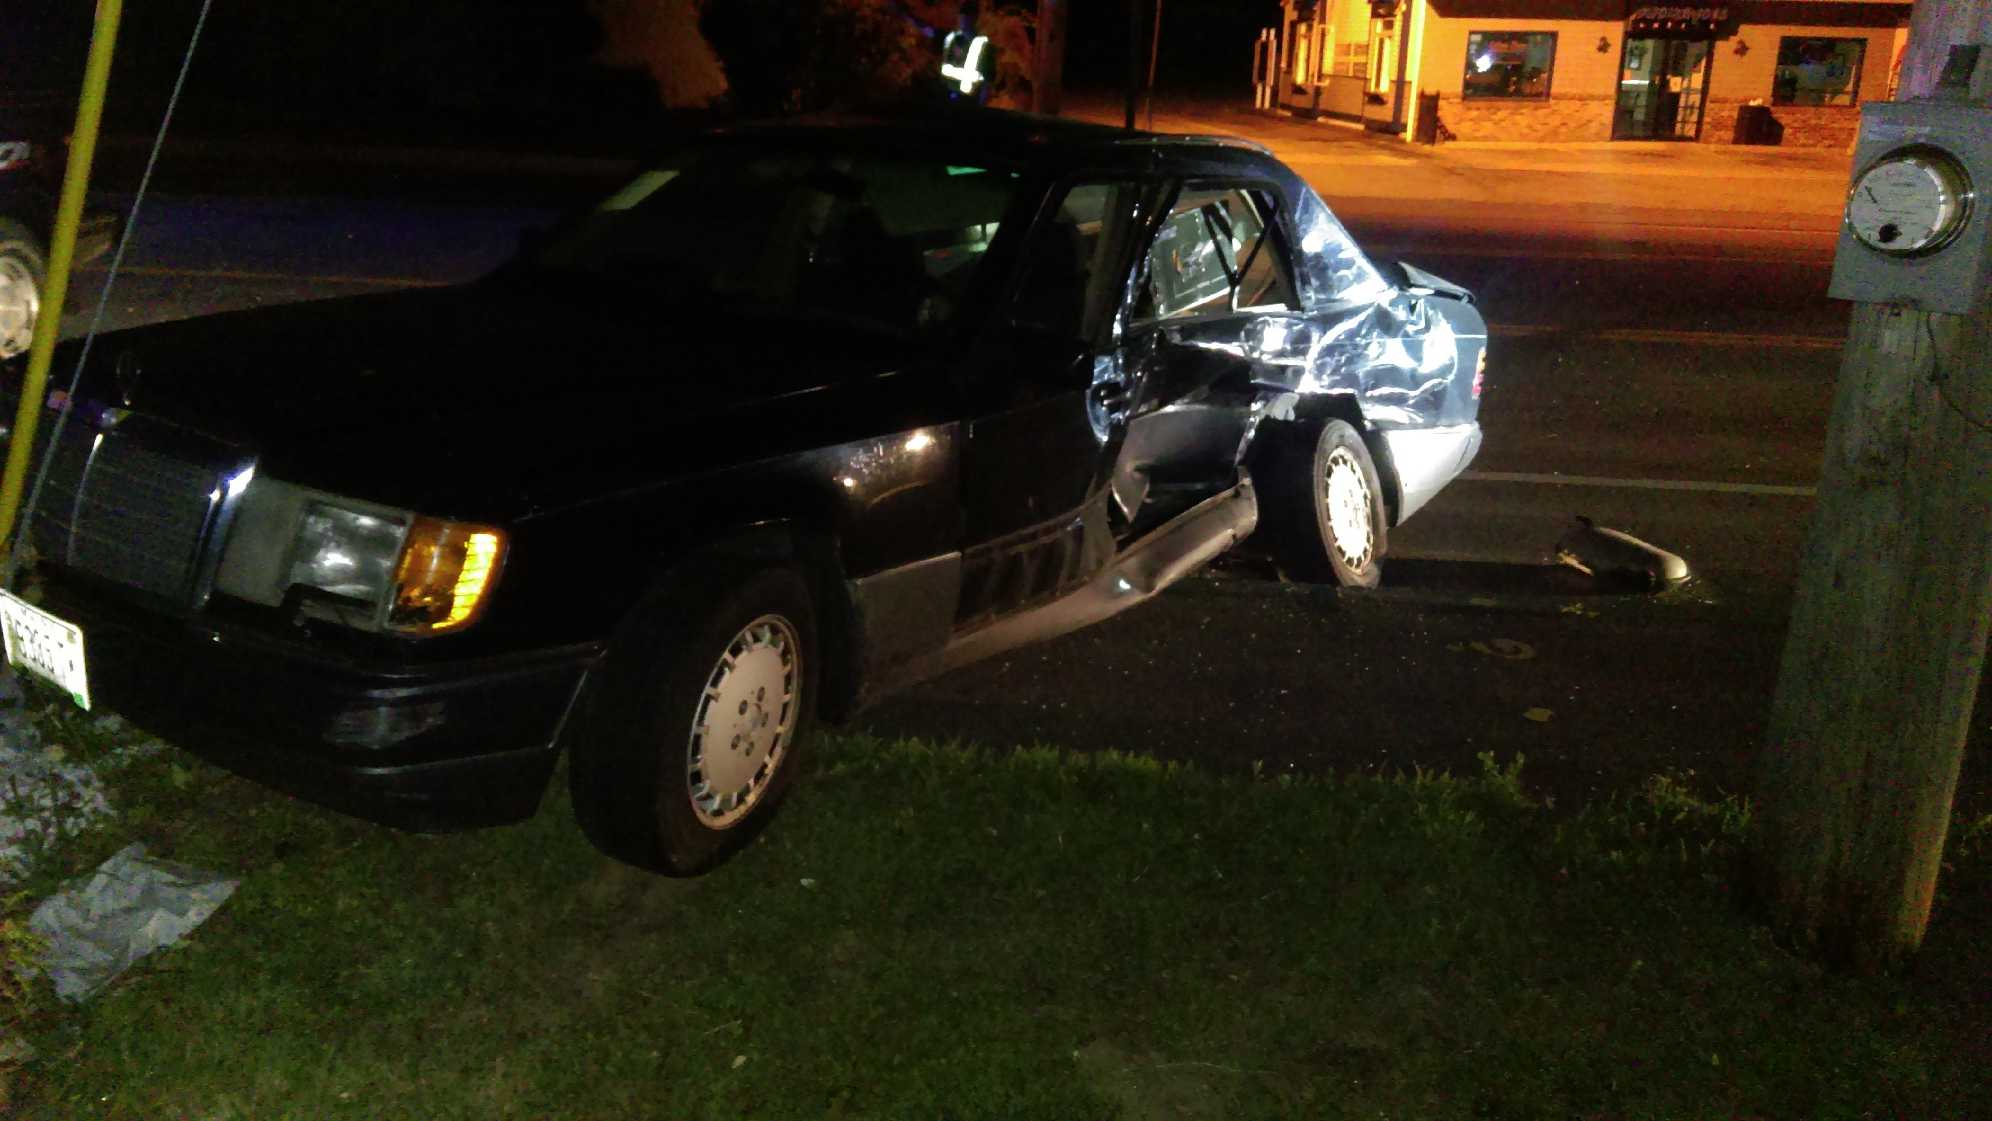 A man from Brownfield has been cited for failure to yield in a crash in Rochester, New Hampshire.